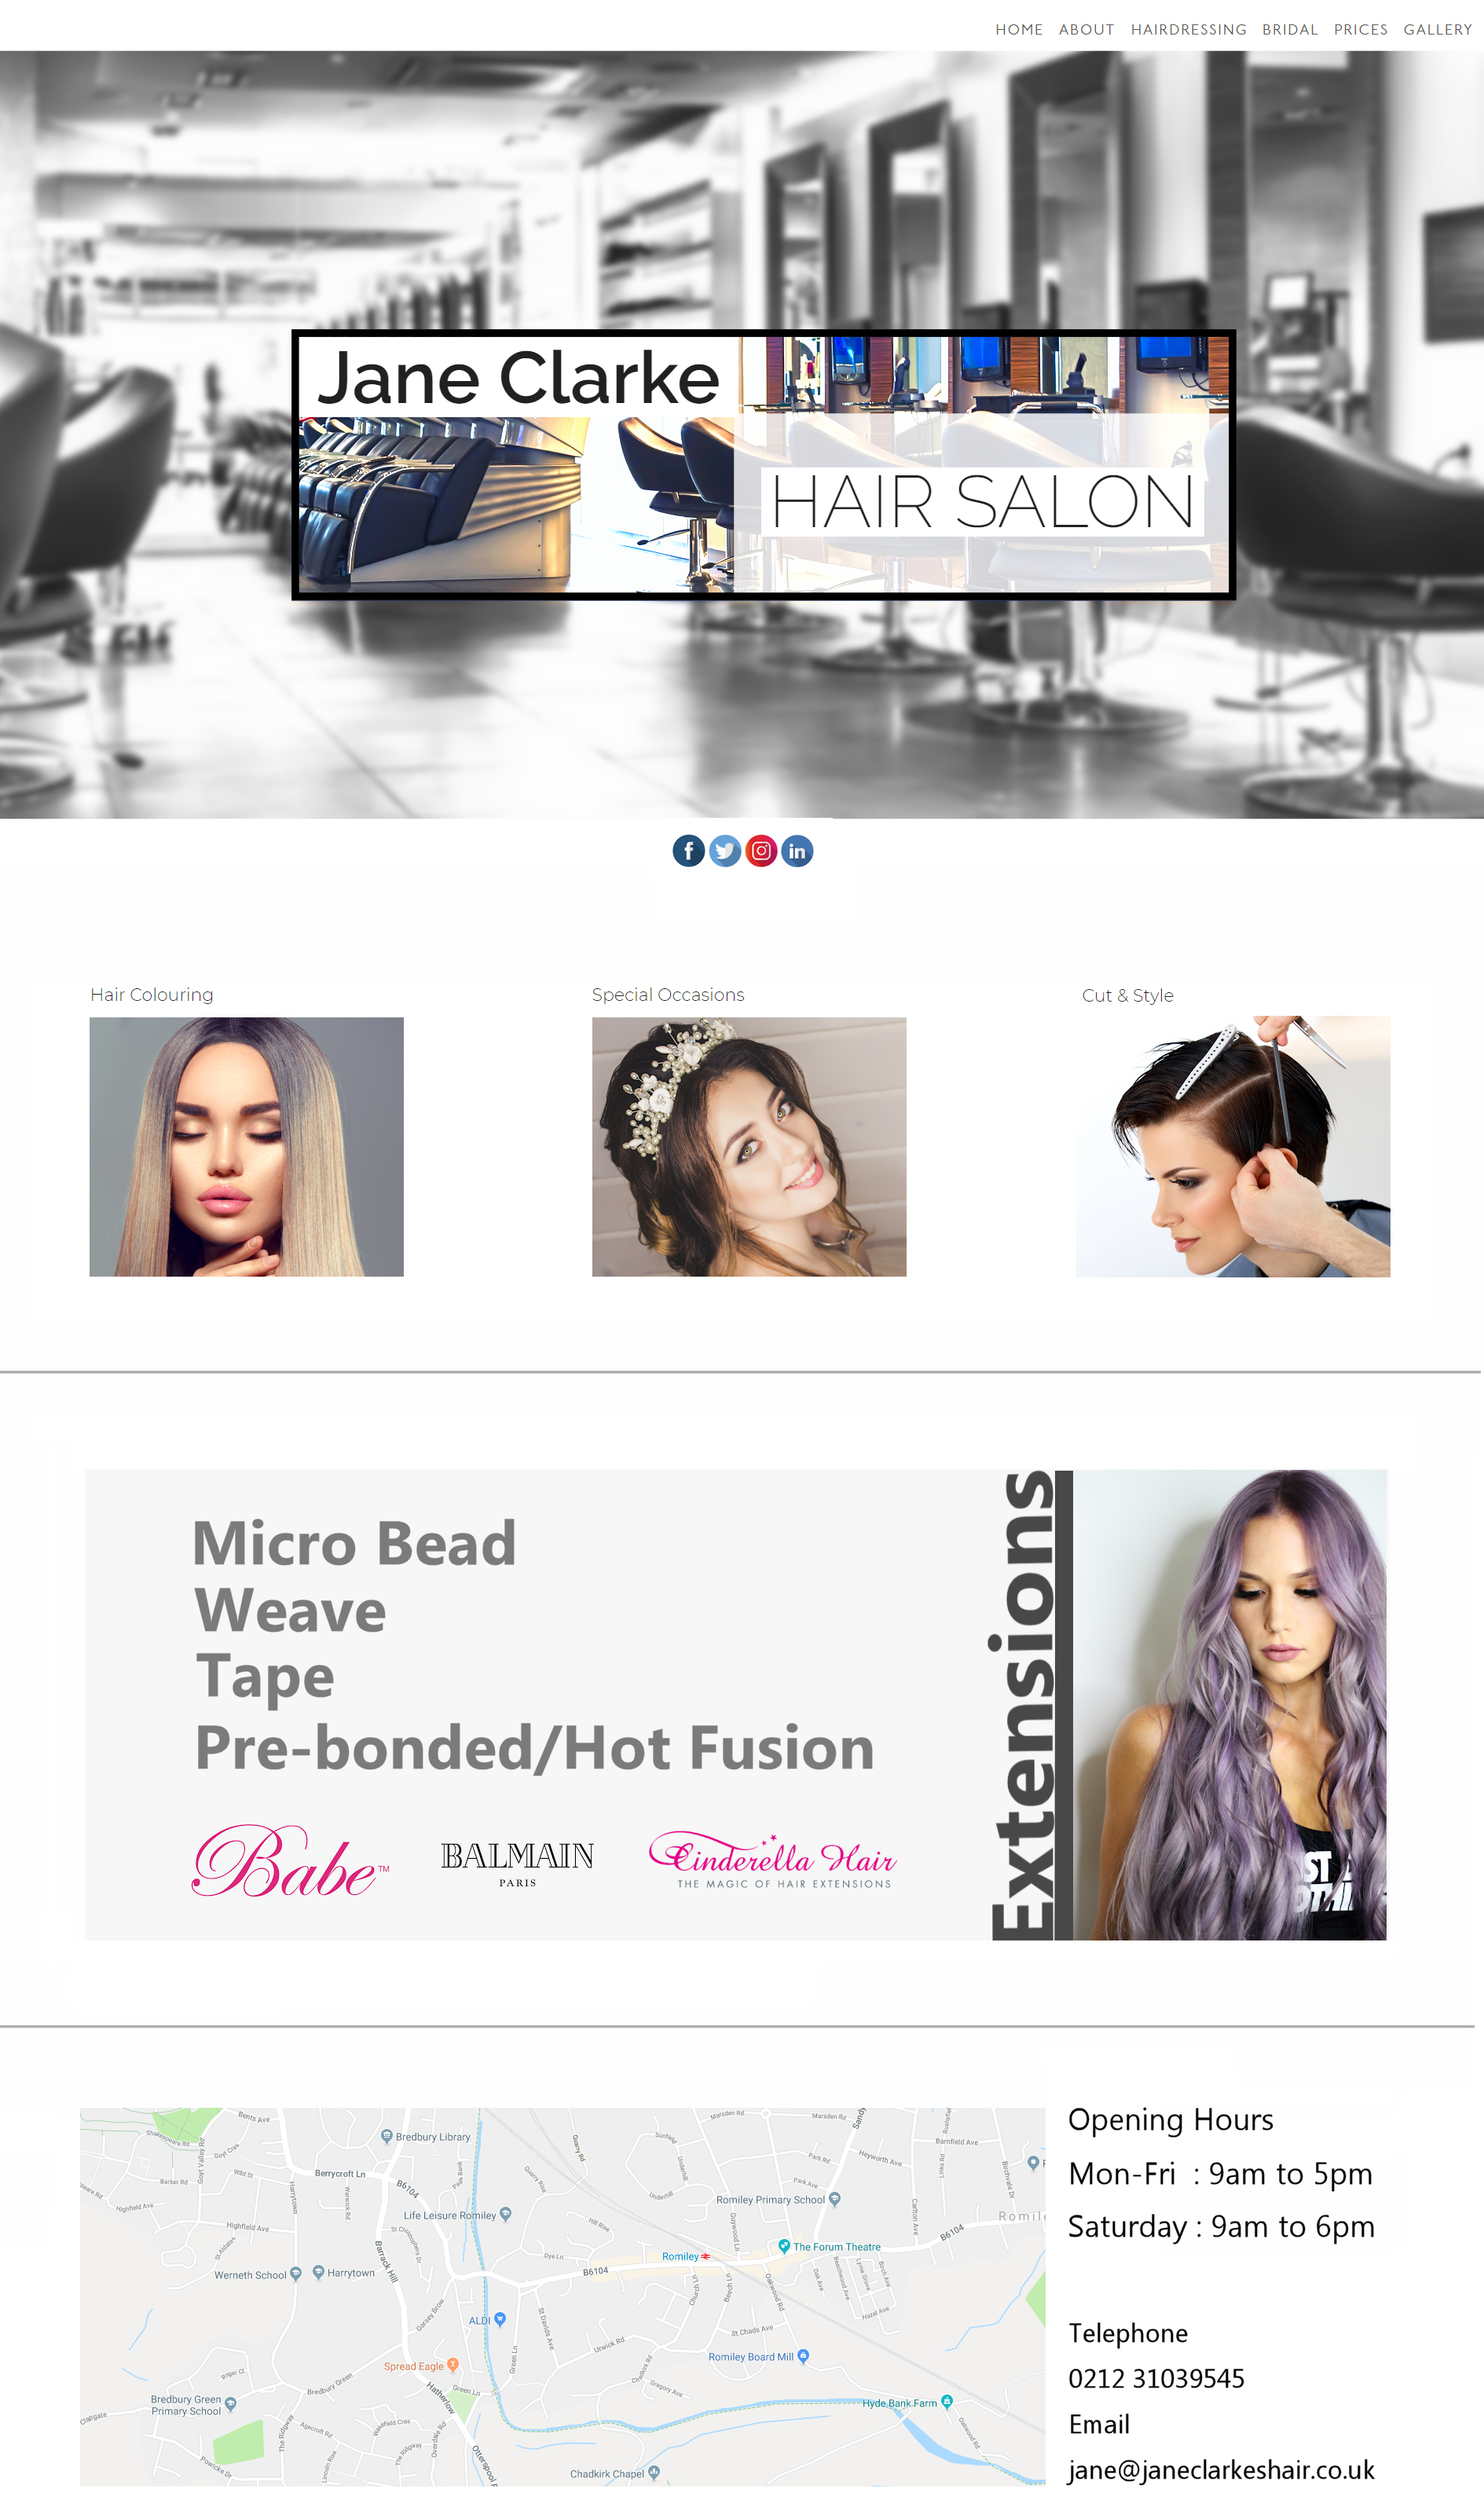 Template example style for a salon